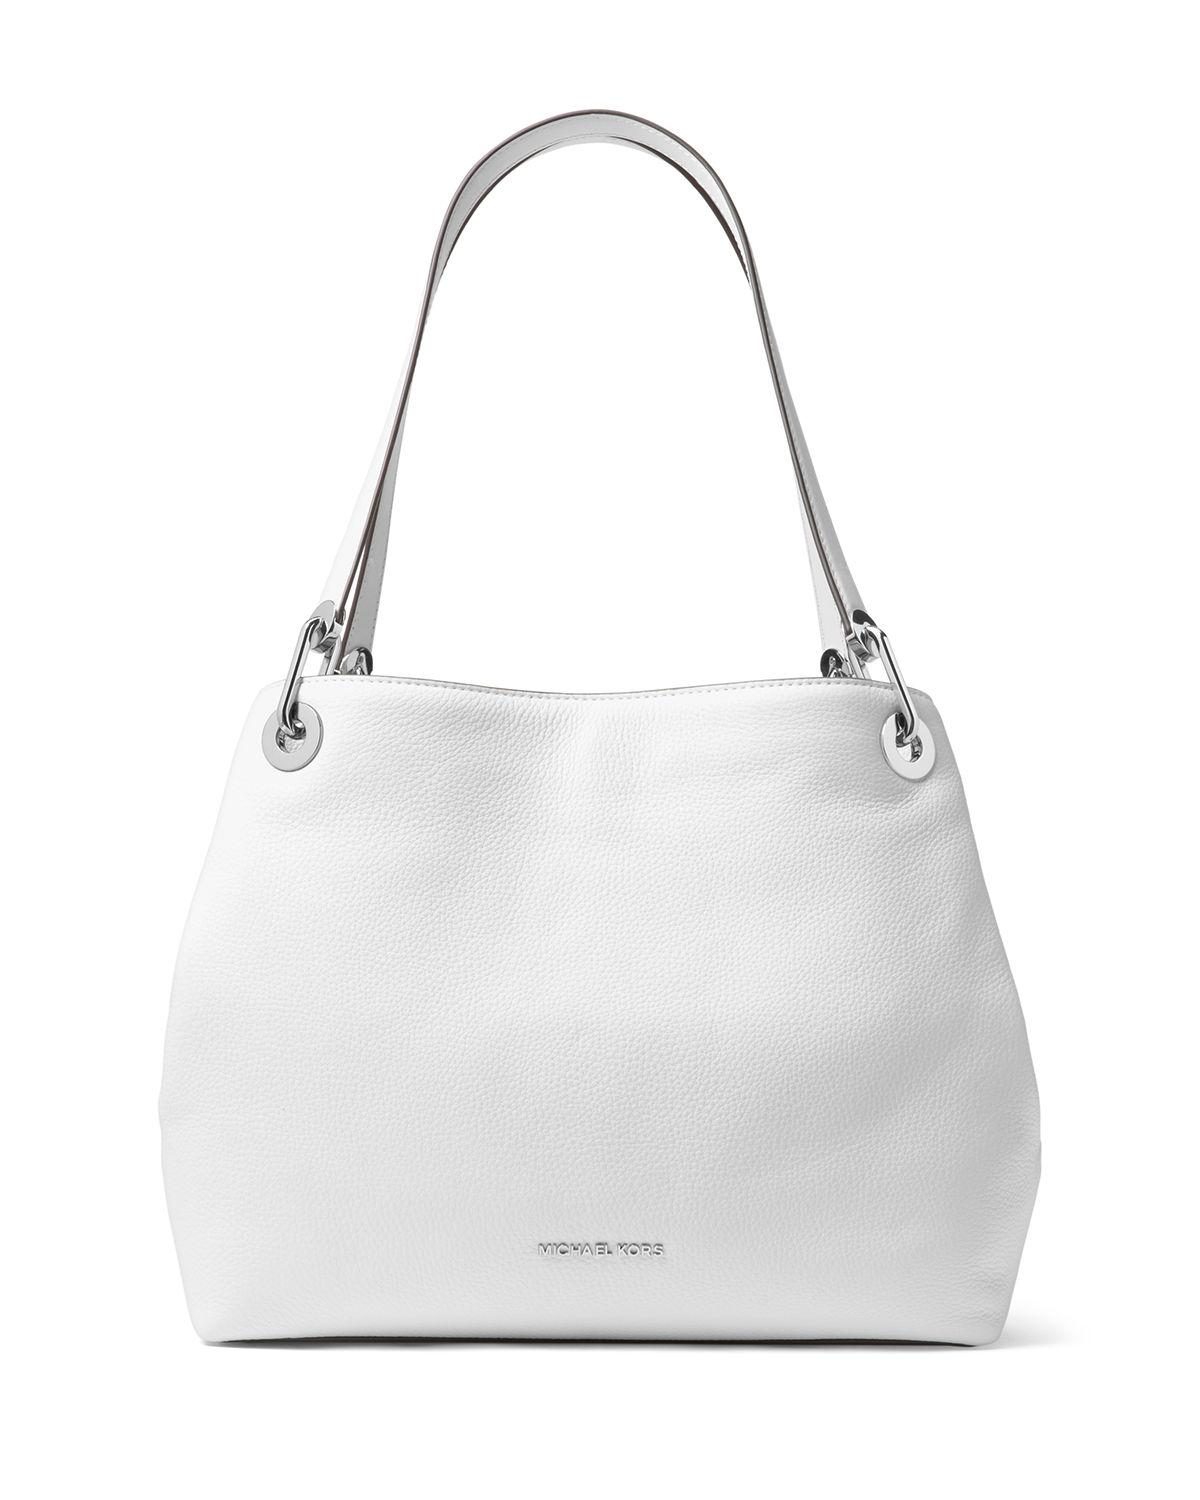 9cb64a13468c Michael Michael Kors Raven Large Pebbled Leather Shoulder Tote In Optic  White/Silver